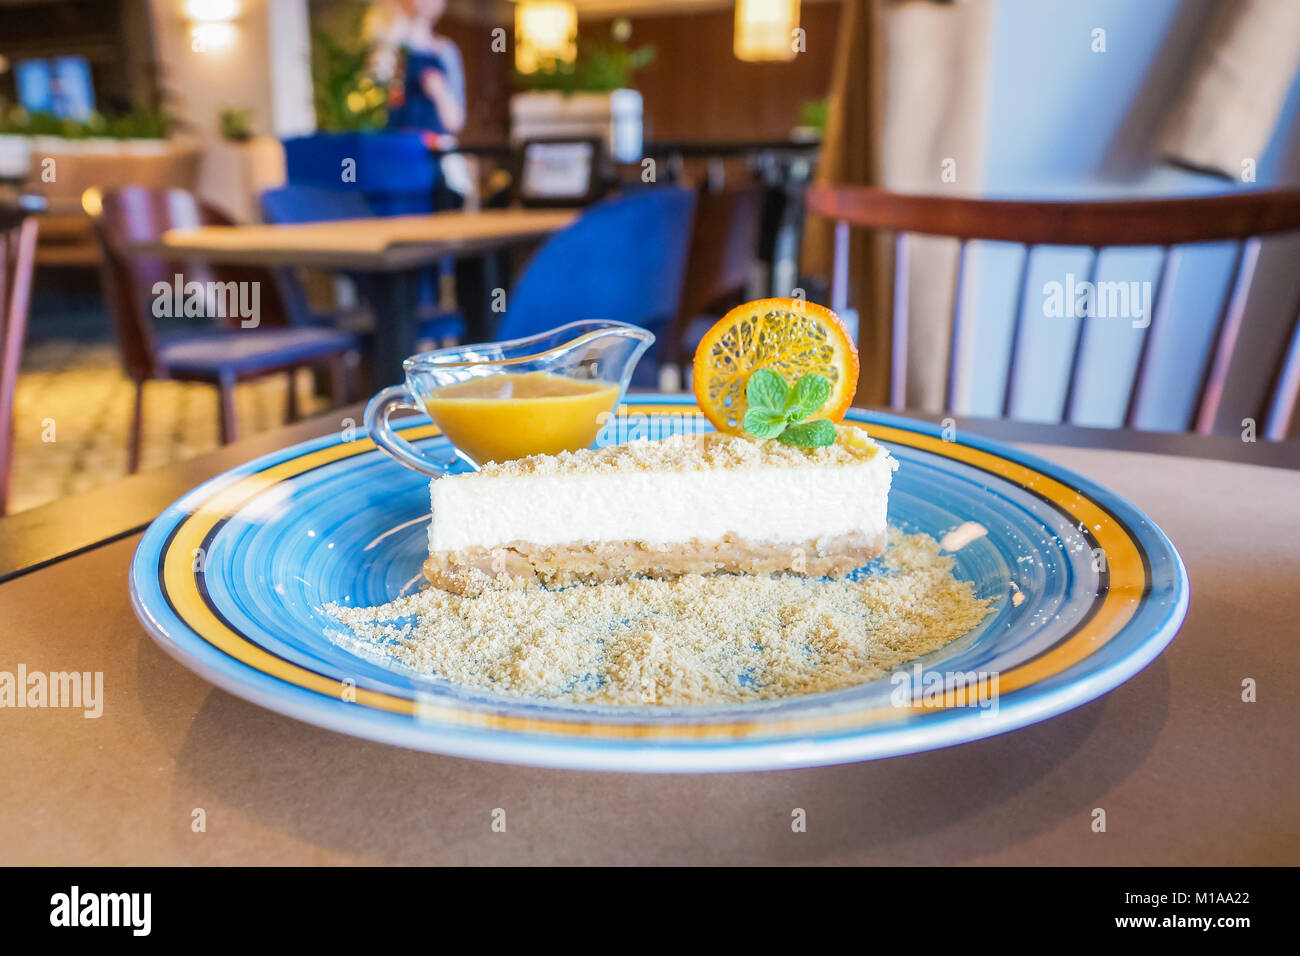 Cheesecake with sea-buckthorn sauce in a blue with yellow stripe plate in a restaraunt - Stock Image